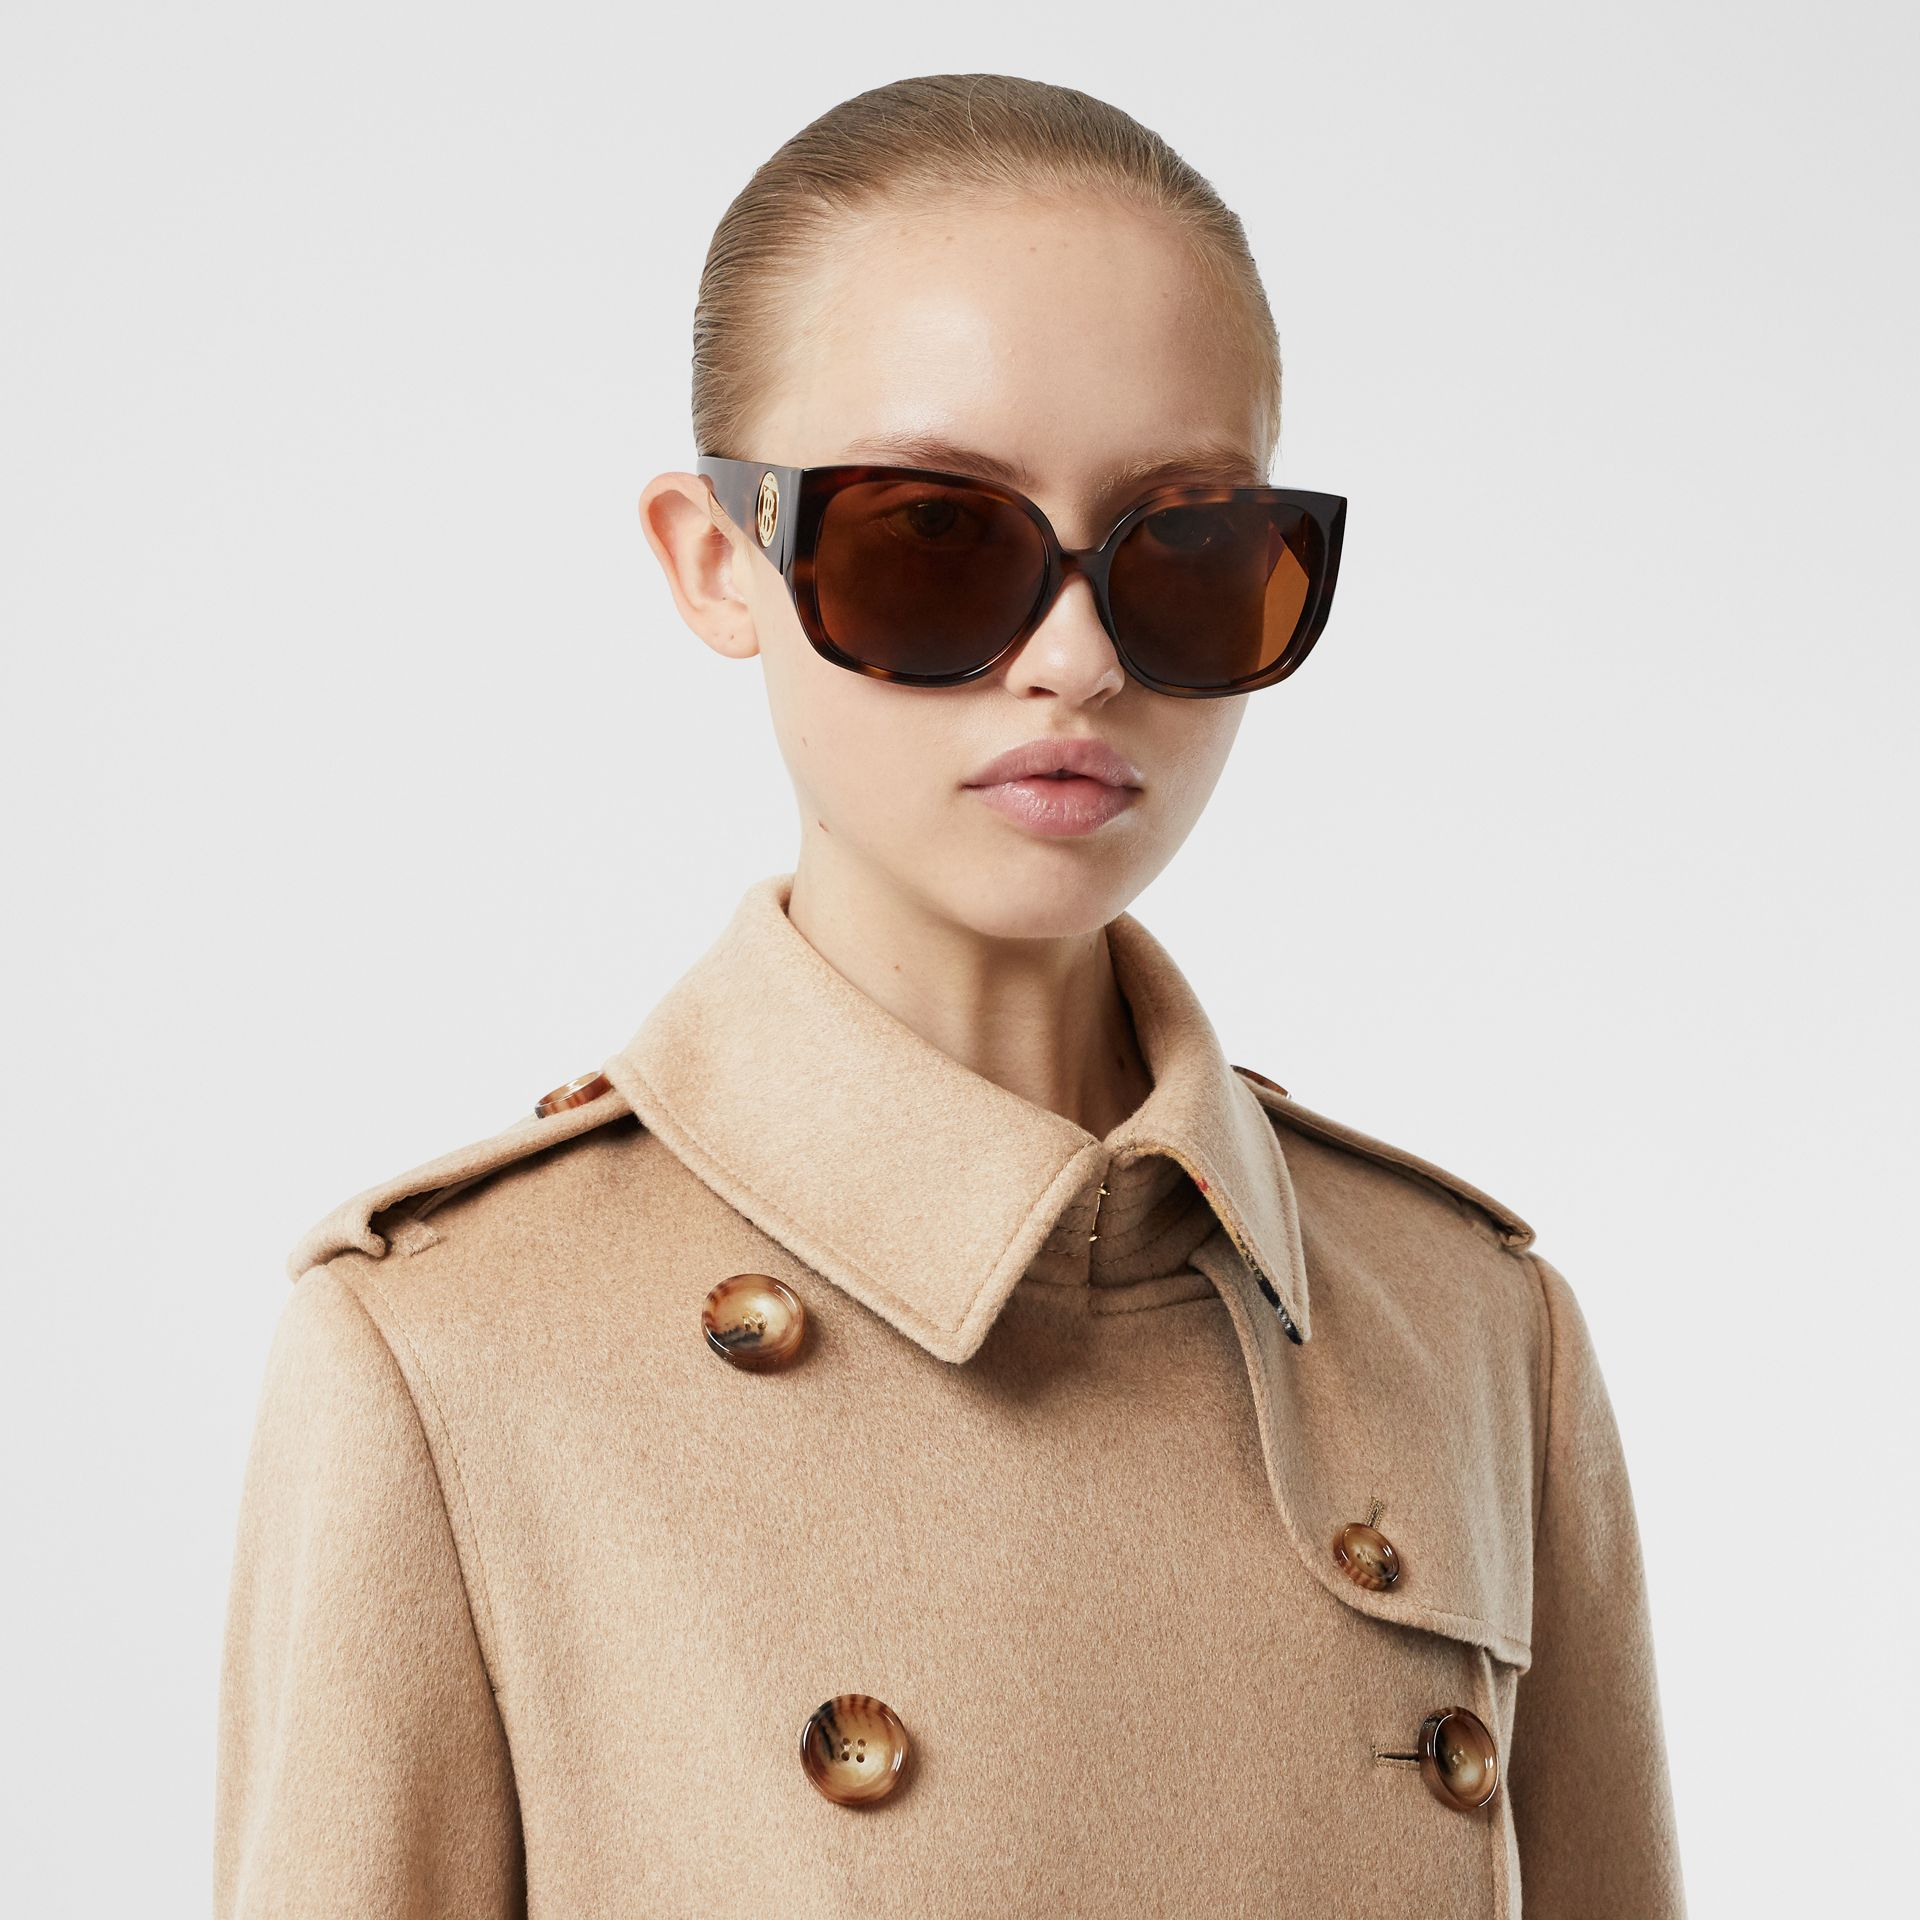 Cashmere Trench Coat in Camel - Women | Burberry United Kingdom - gallery image 1